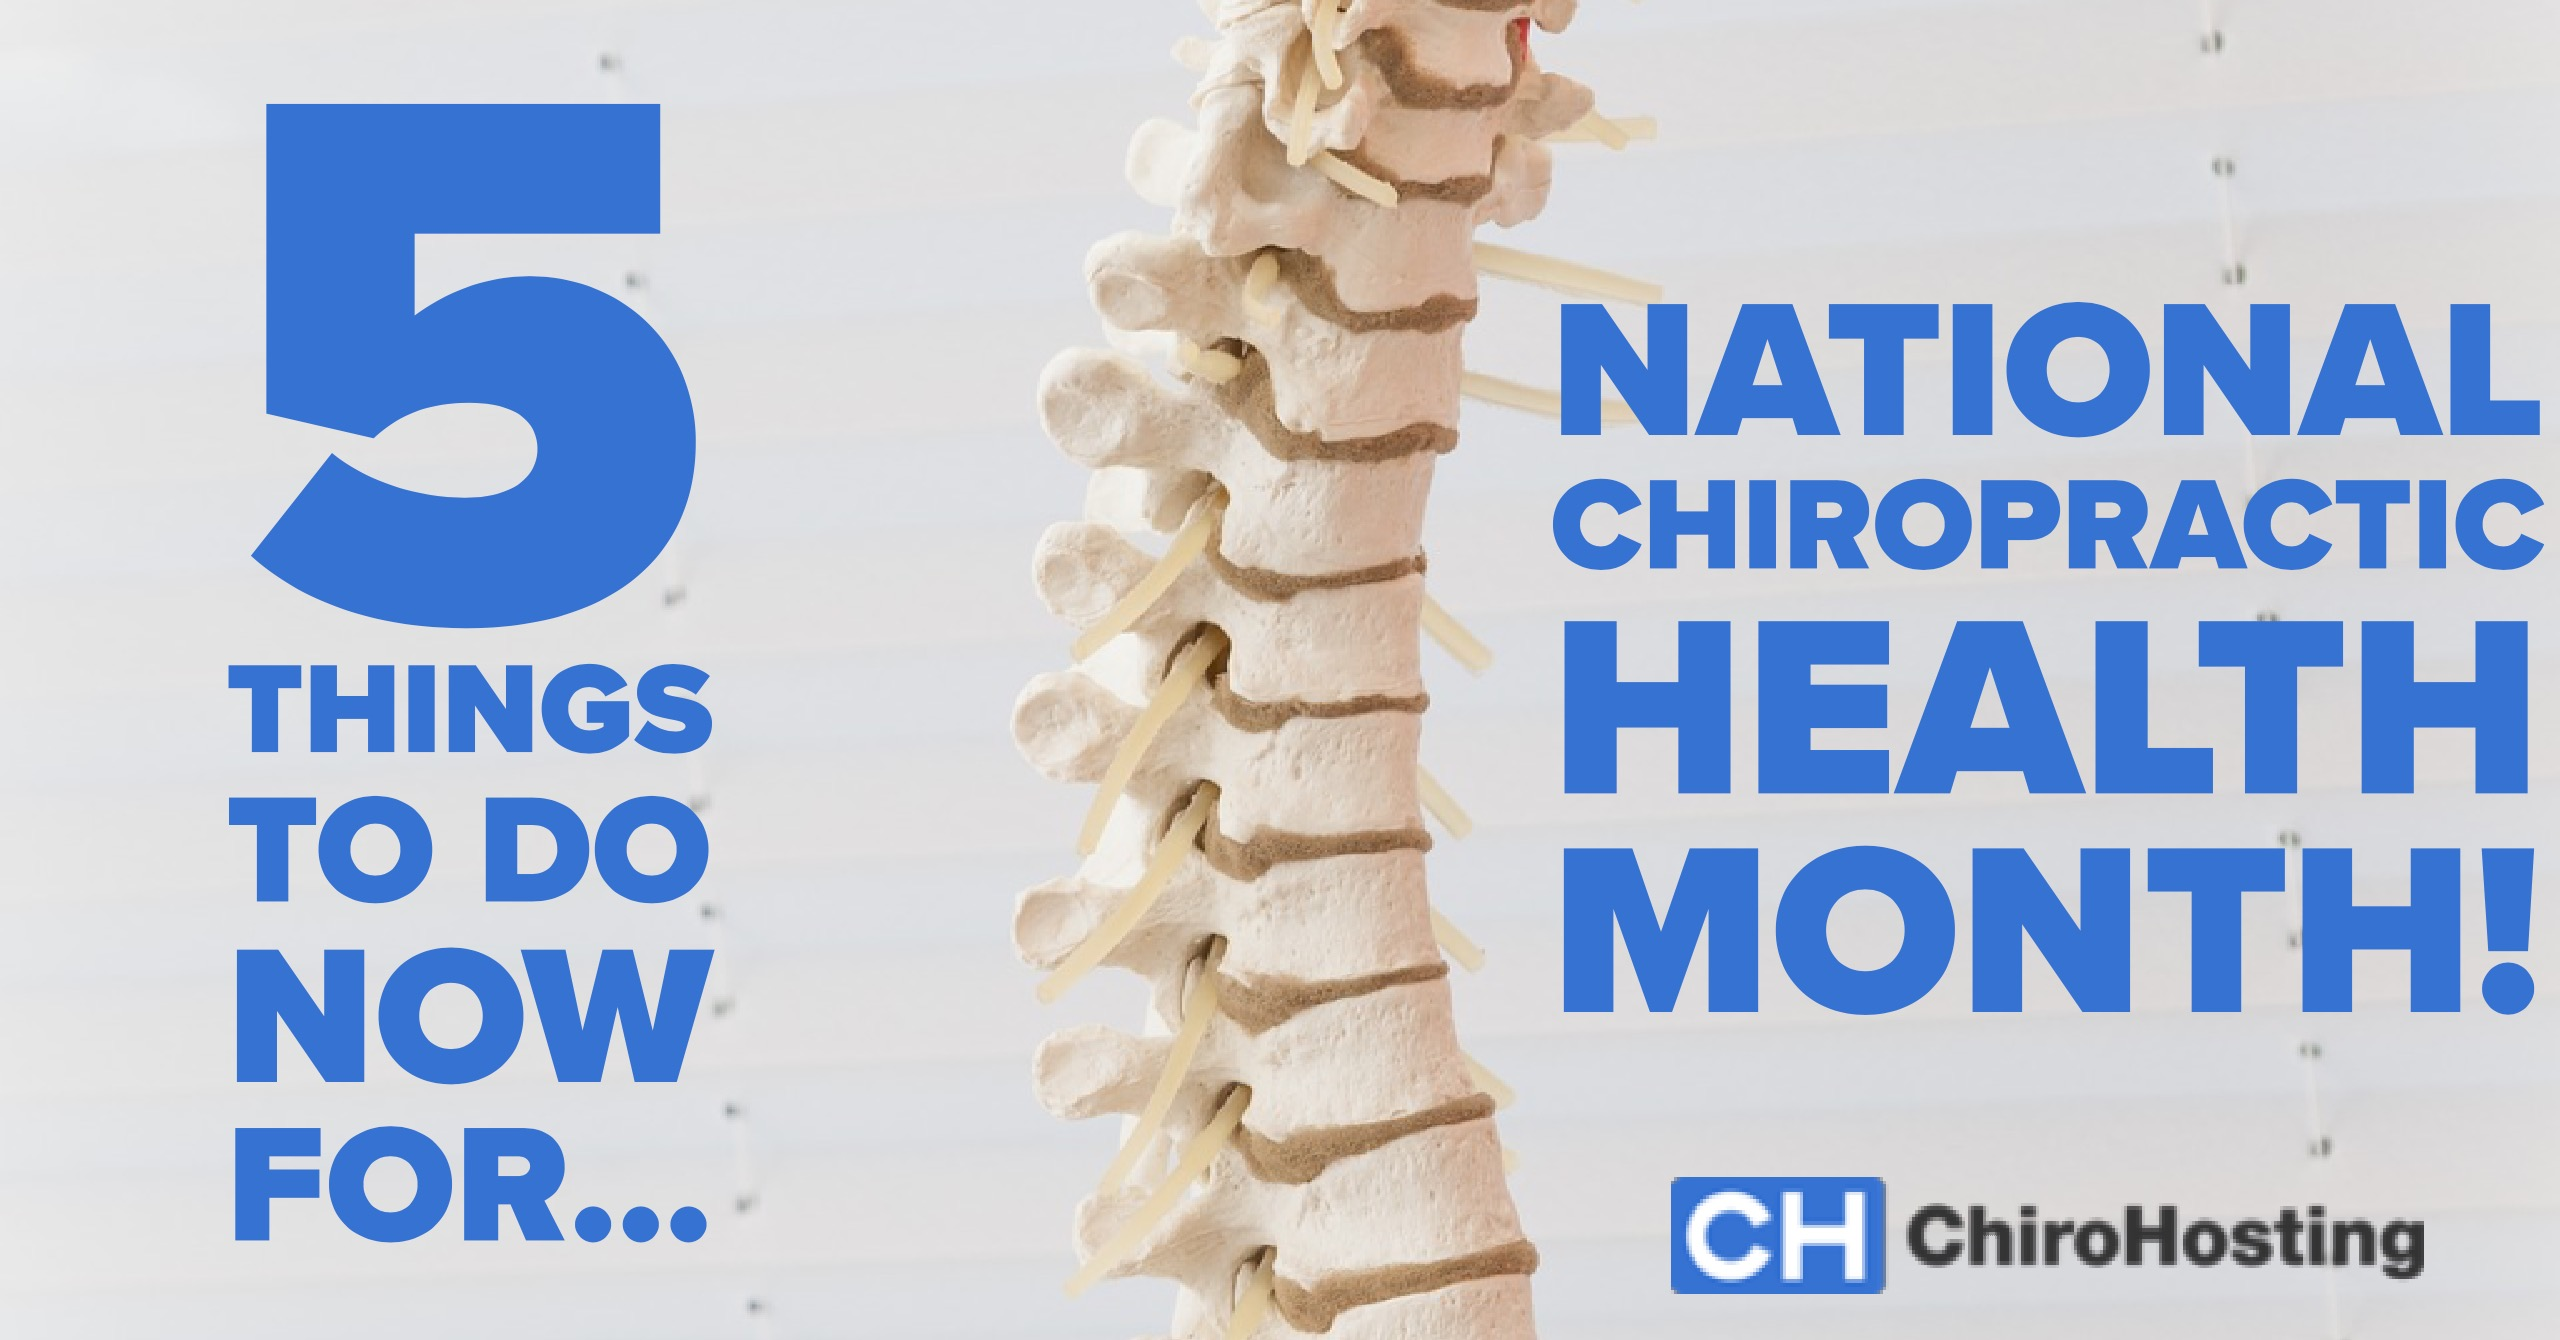 It's Chiropractic Health Month! 5 Quick Things to Do NOW! Don't Miss Out...